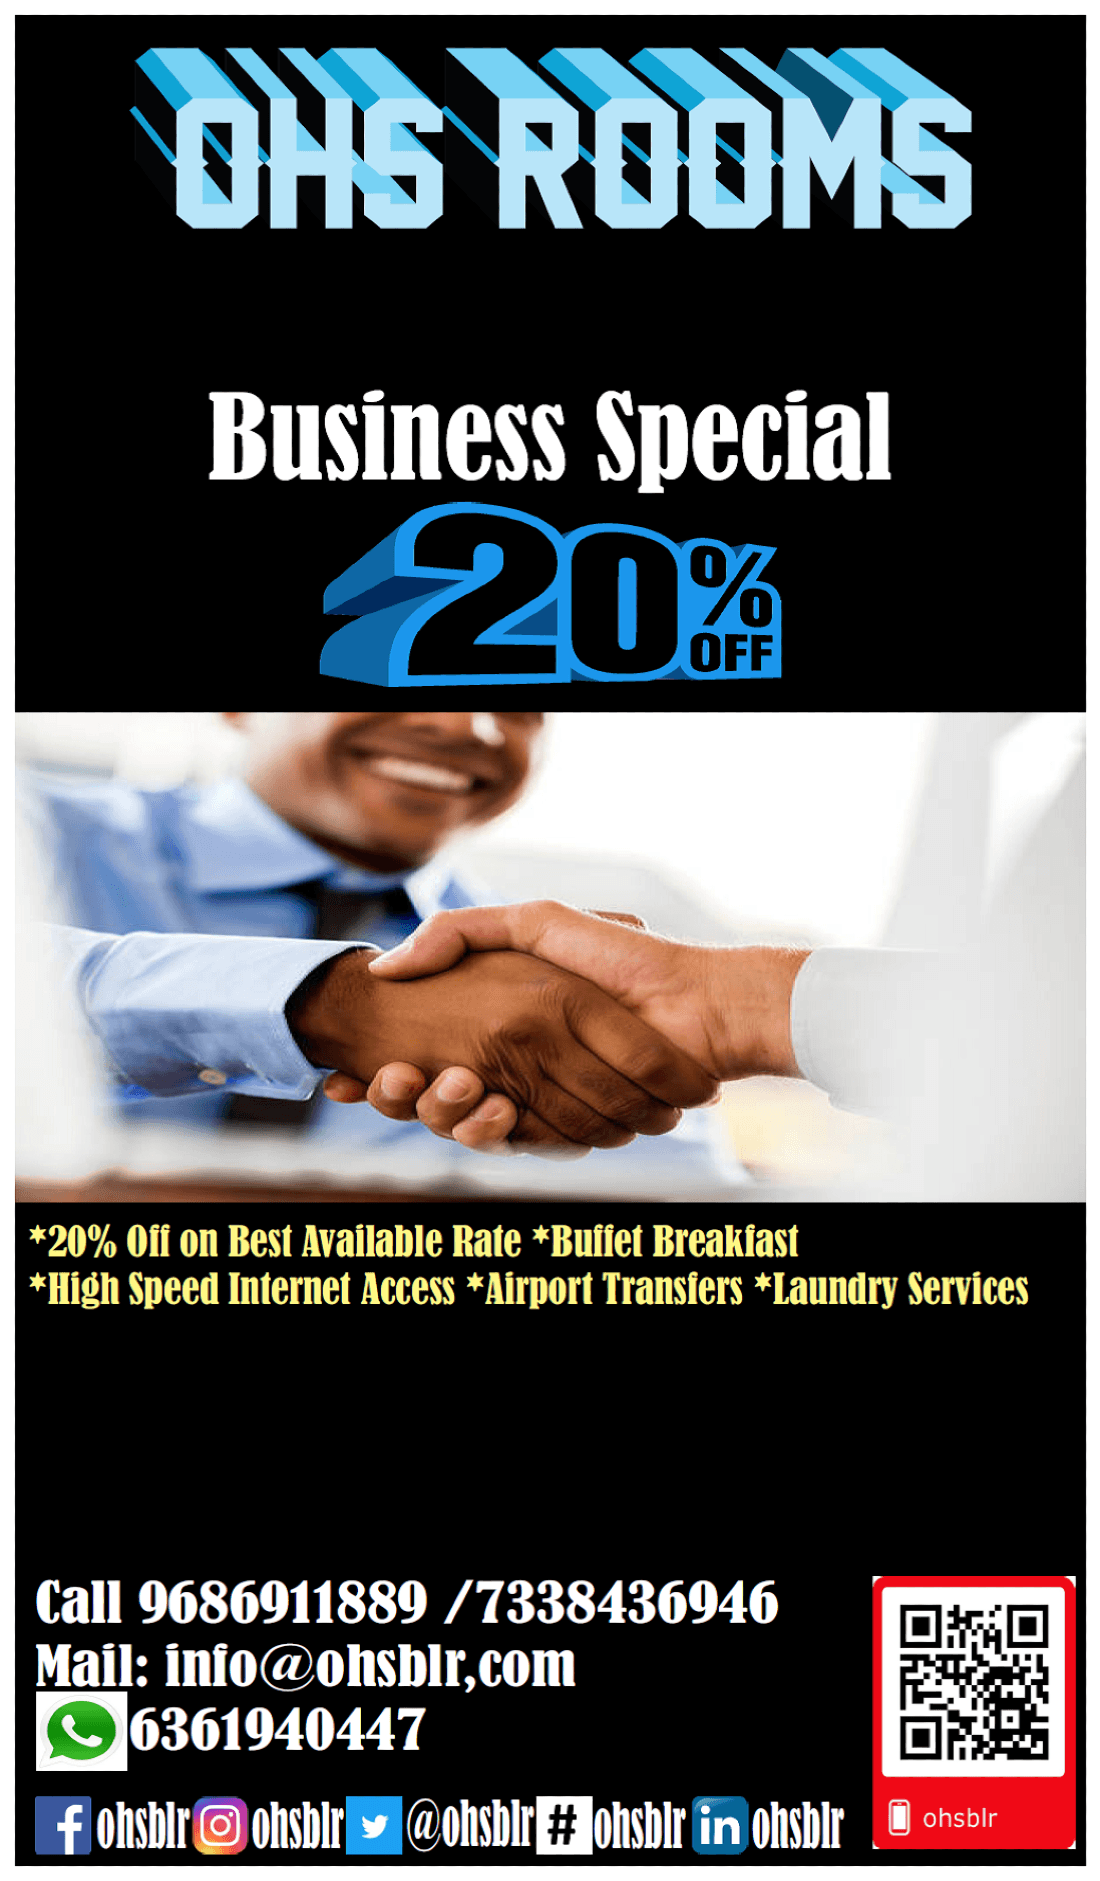 ohs rooms 20% discount for Business Travellers